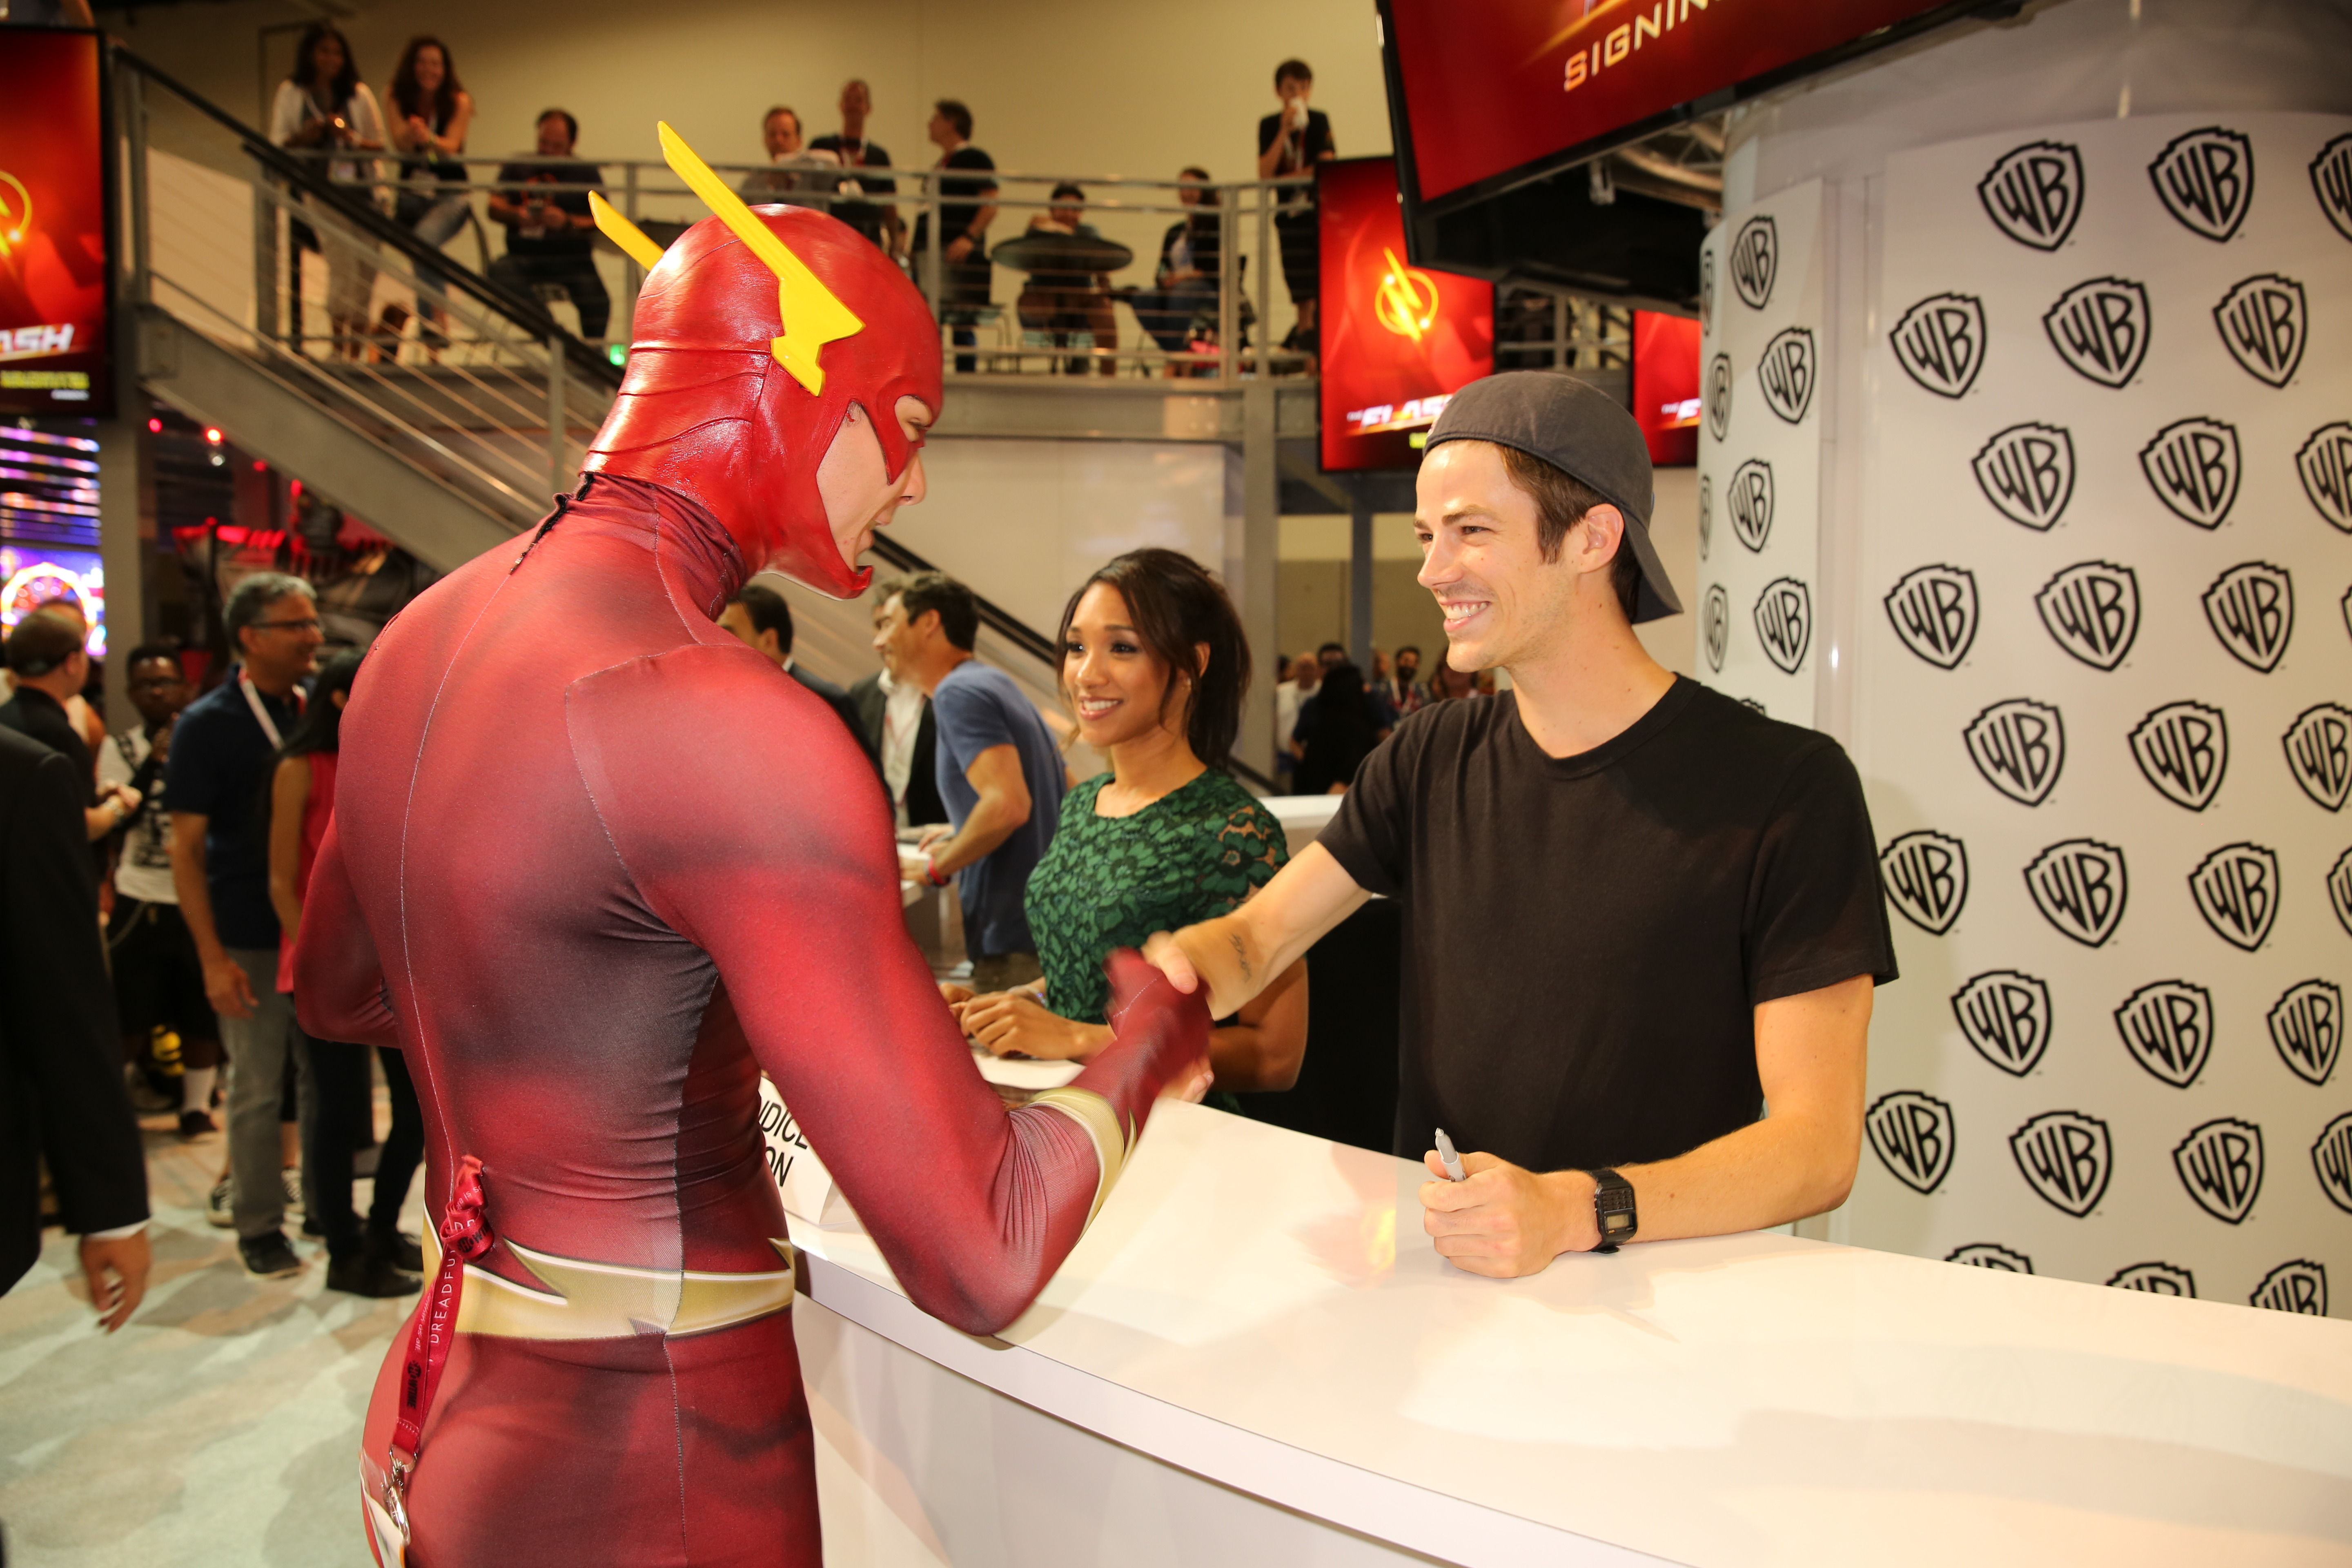 The flash signing a super flash fan meets series star grant gustin barry allenthe flash at the flash signing in the warner bros booth during comic con 2015 m4hsunfo Image collections